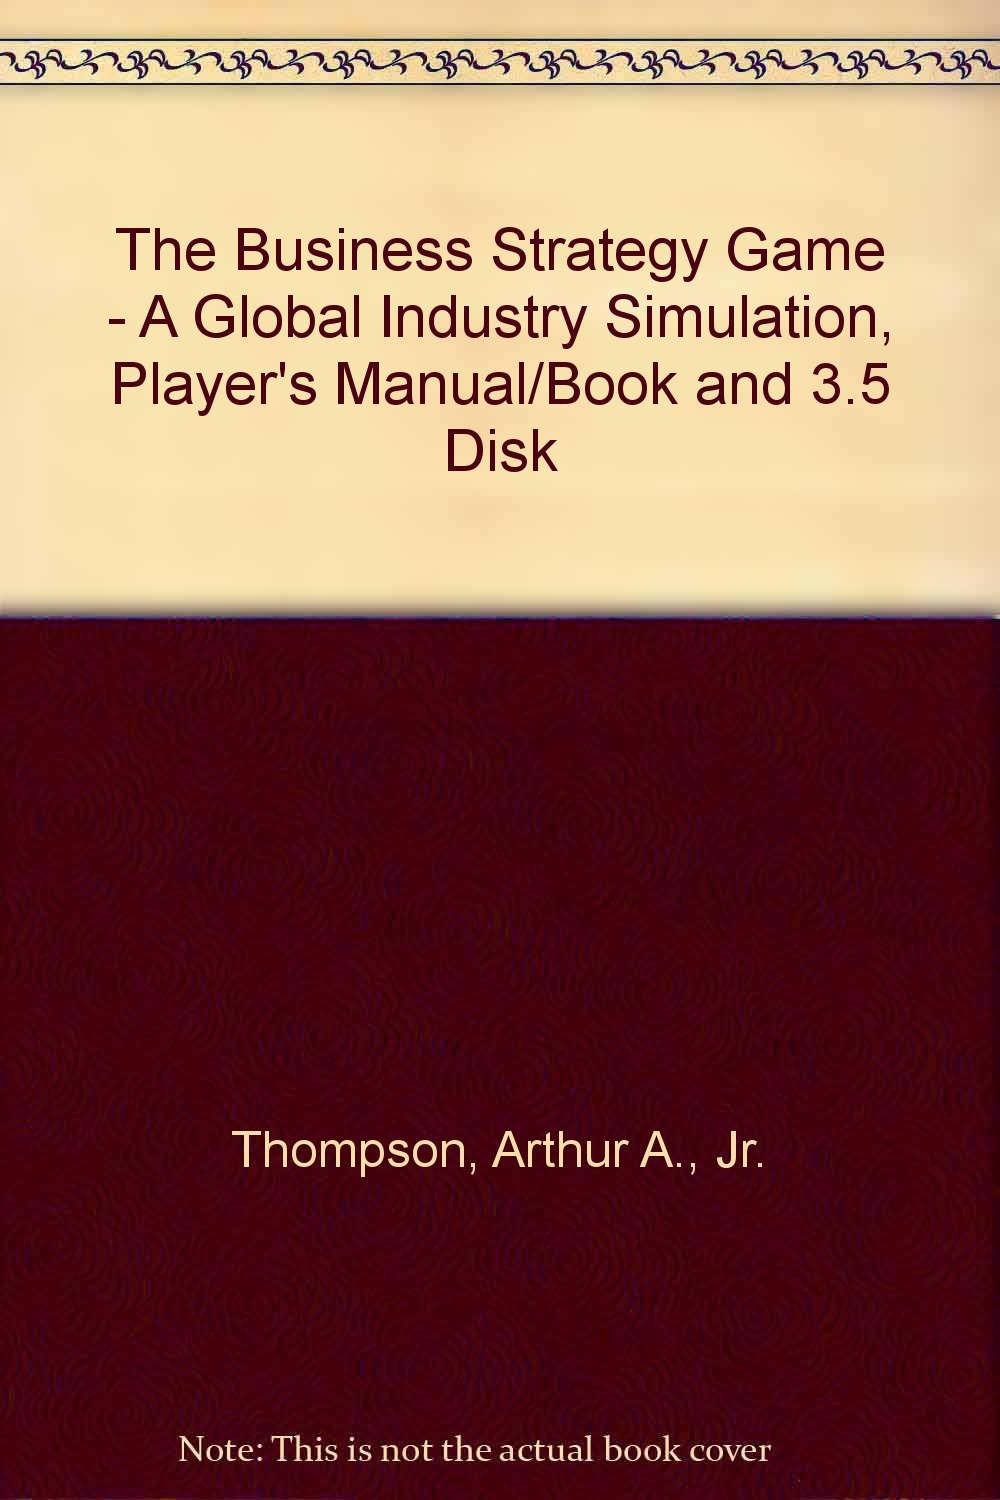 The Business Strategy Game - A Global Industry Simulation, Player's Manual/Book  and 3.5 Disk: Arthur A., Jr. Thompson: 9780256097238: Books - Amazon.ca